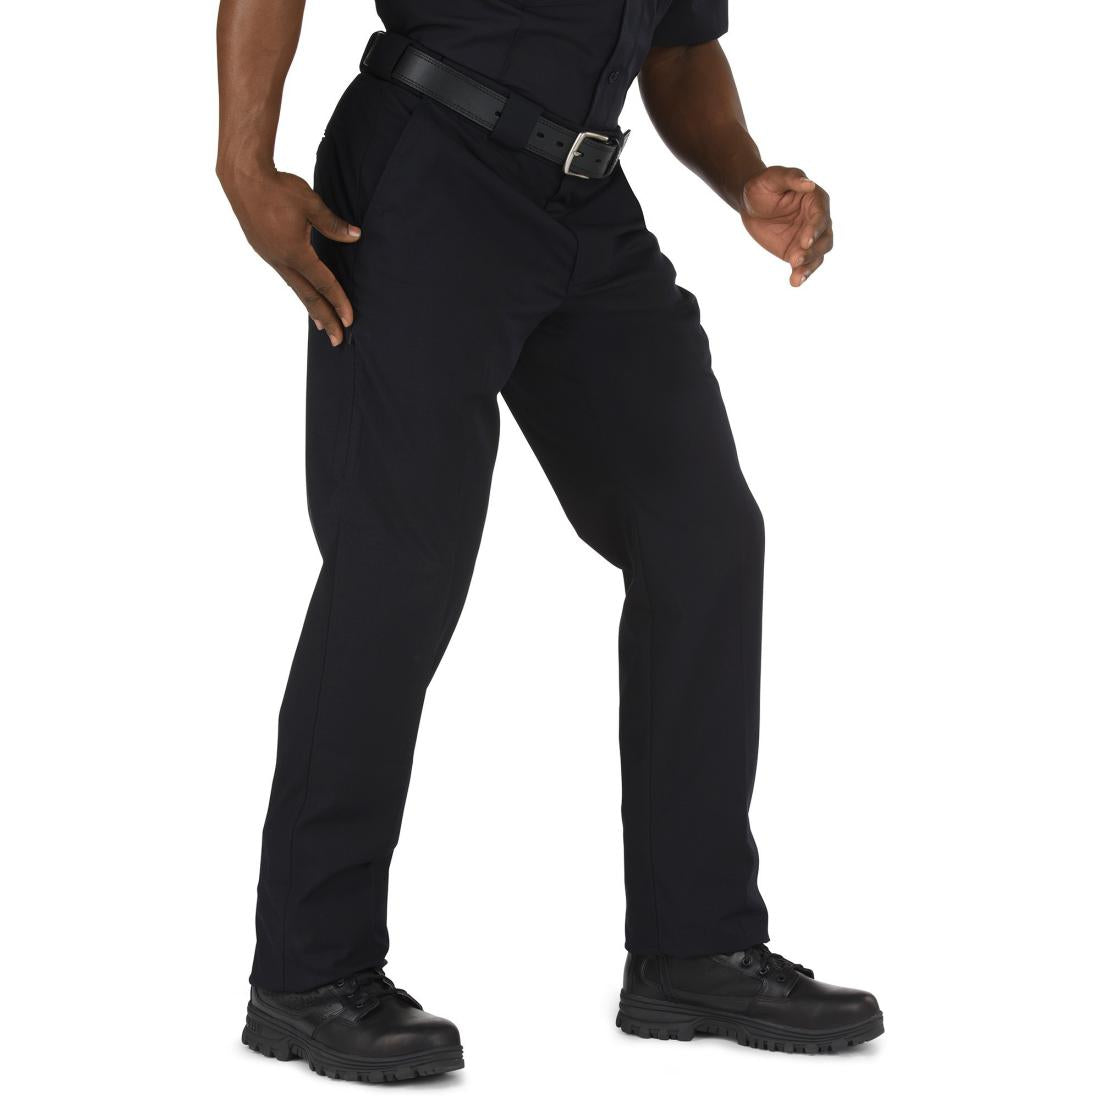 5.11 Tactical 74426 Men's 5.11 Stryke Class-A PDU Pant Midnight Navy